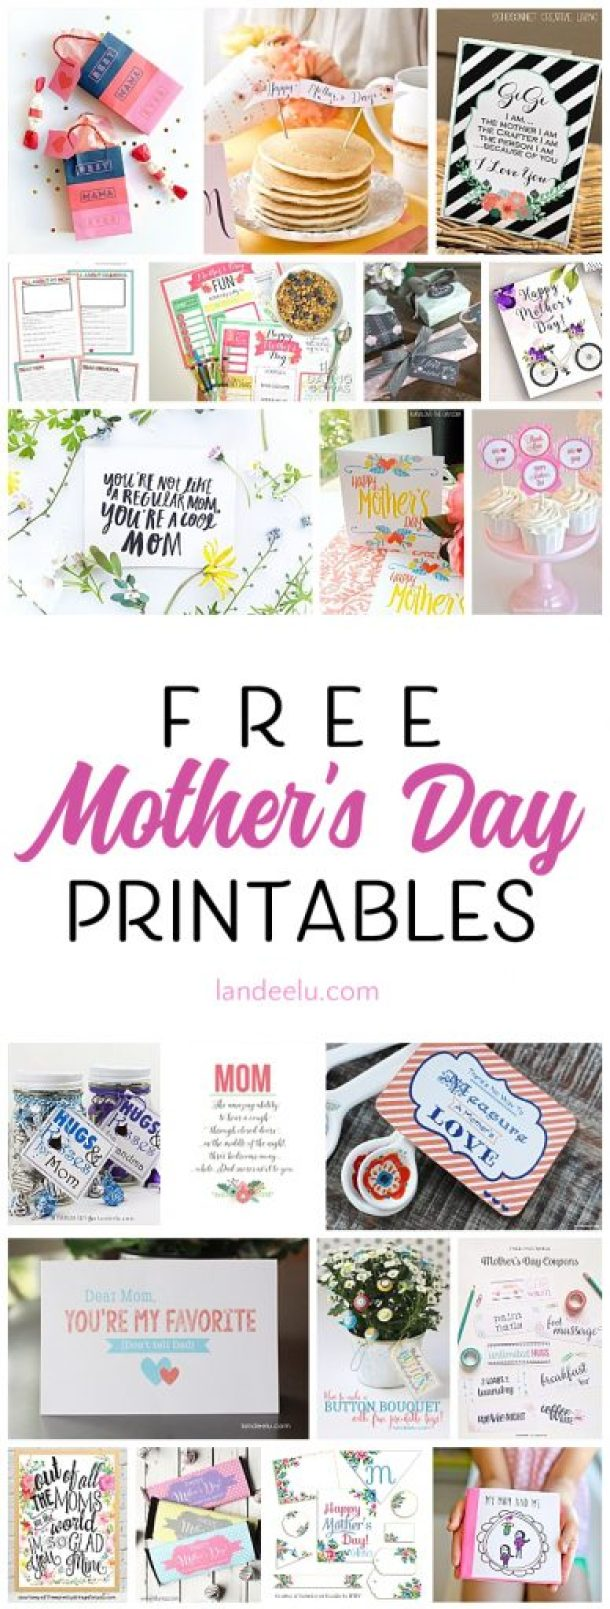 20 Free Mother's Day printables to help celebrate your mom! Tags, cards, artwork and more... all free!